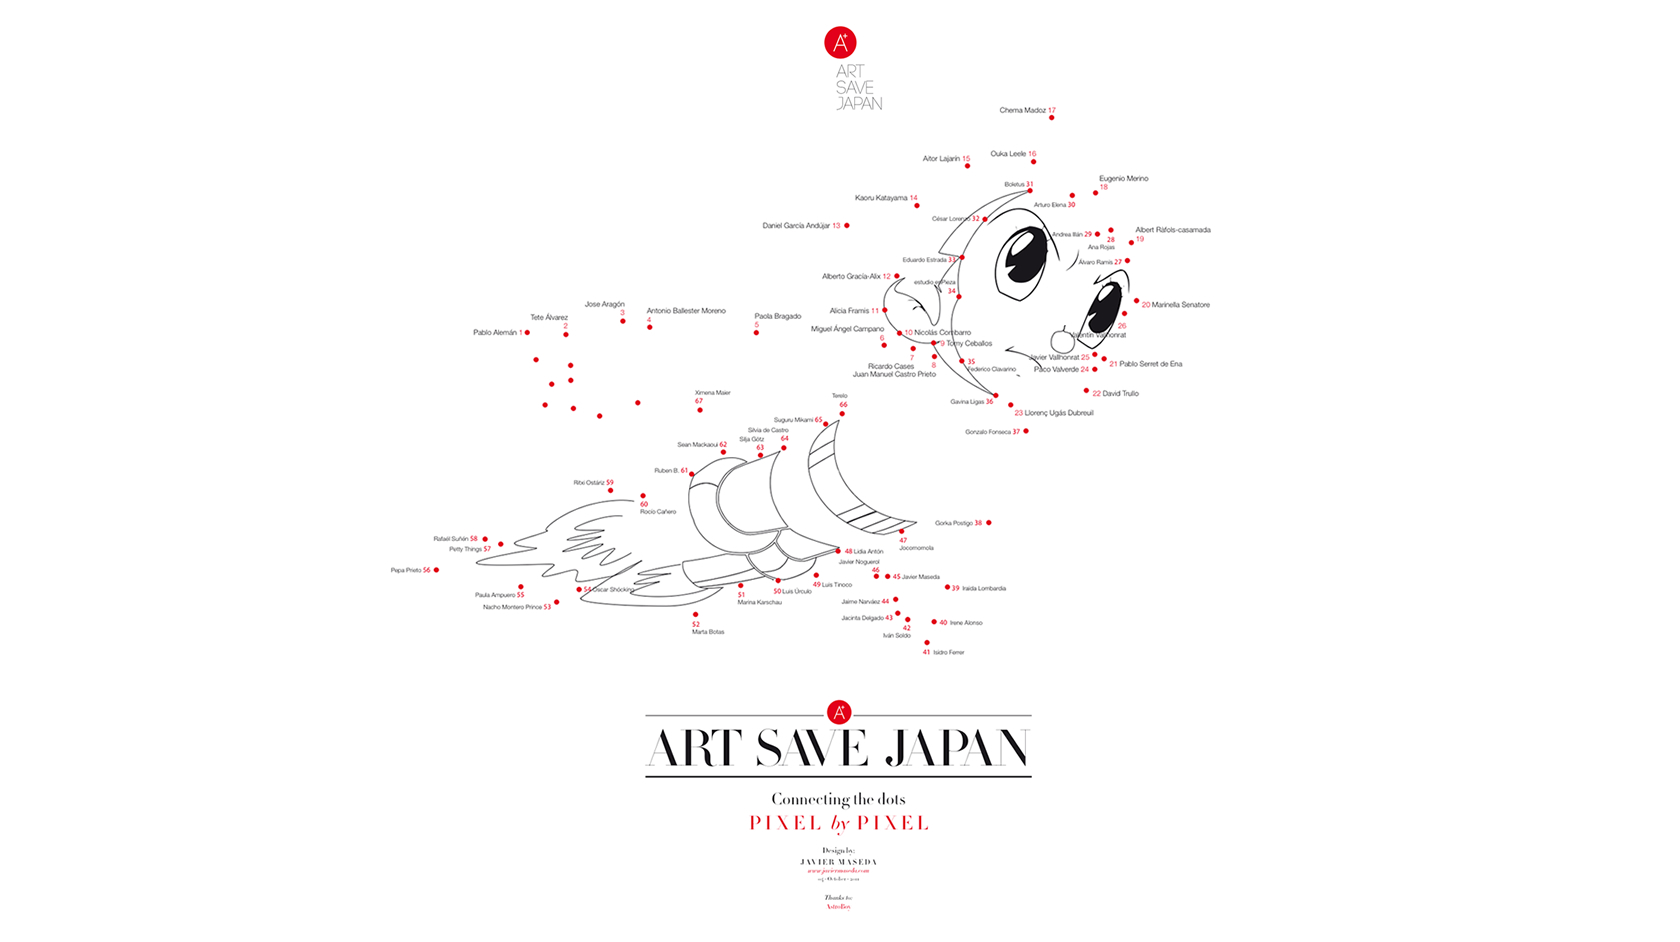 Art Save Japan - Poster Astroboy - Javier Maseda Design